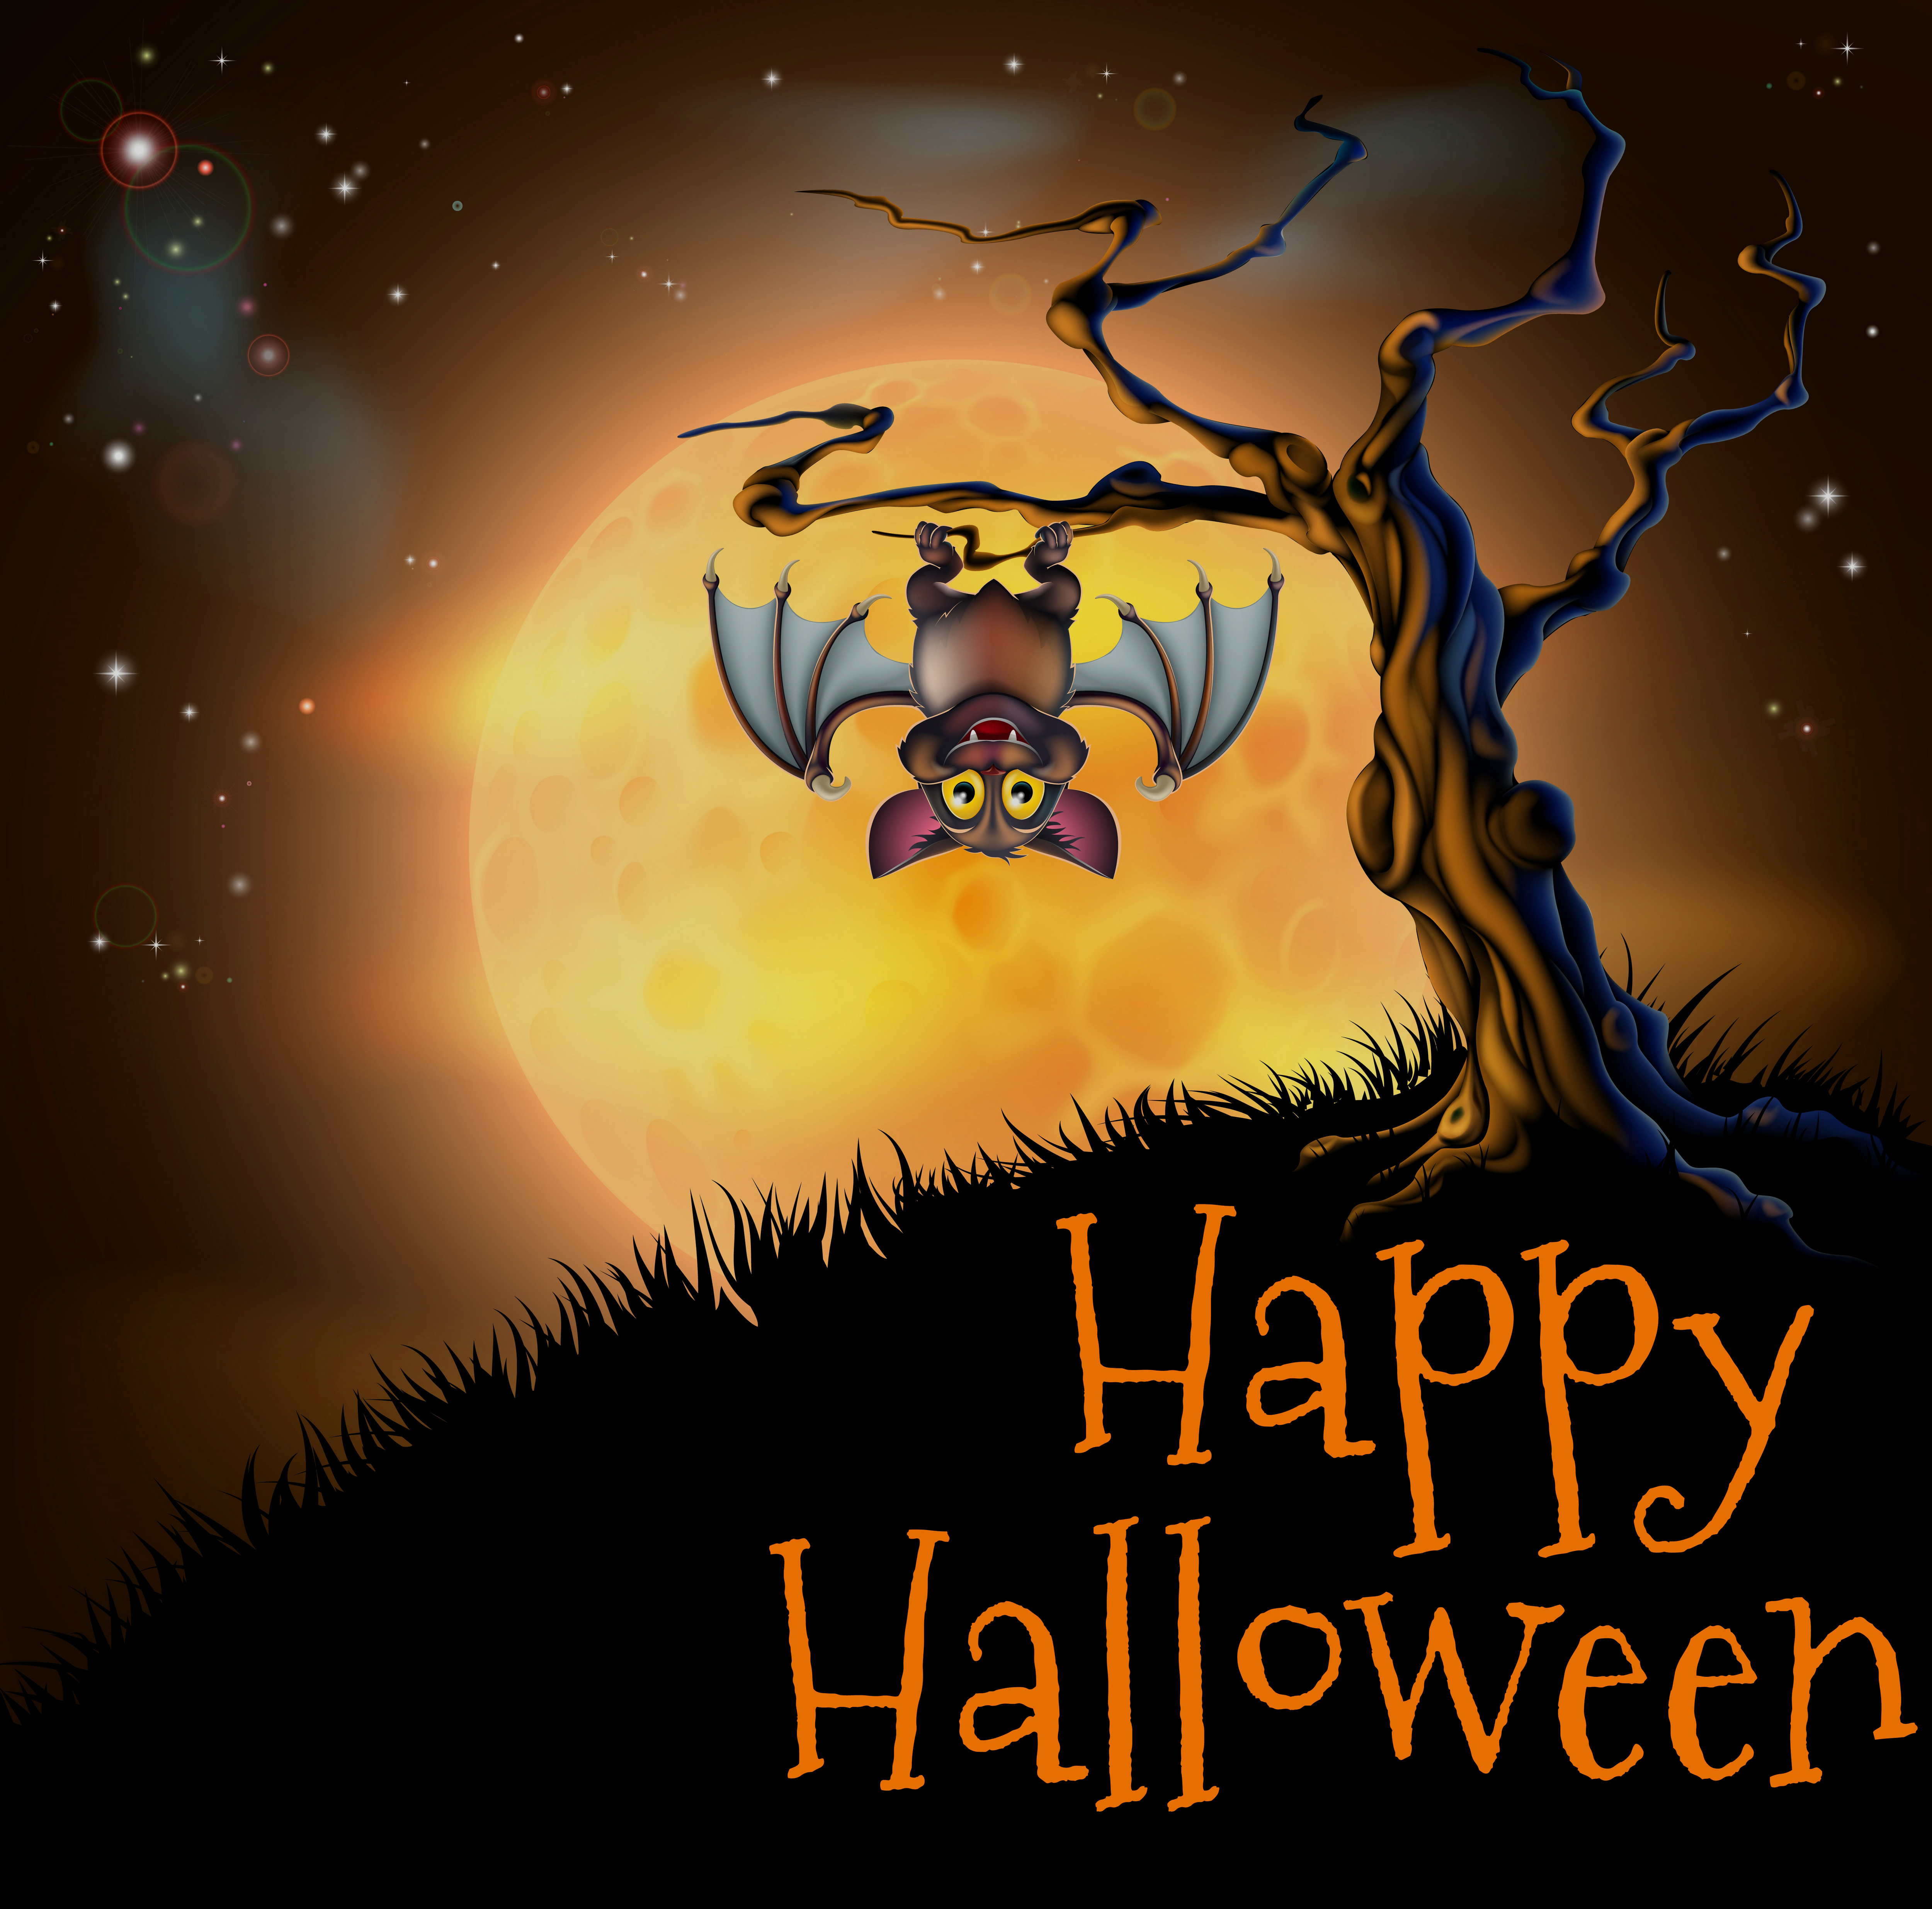 Happy Halloween Backgrounds Festival Collections 5000x4941